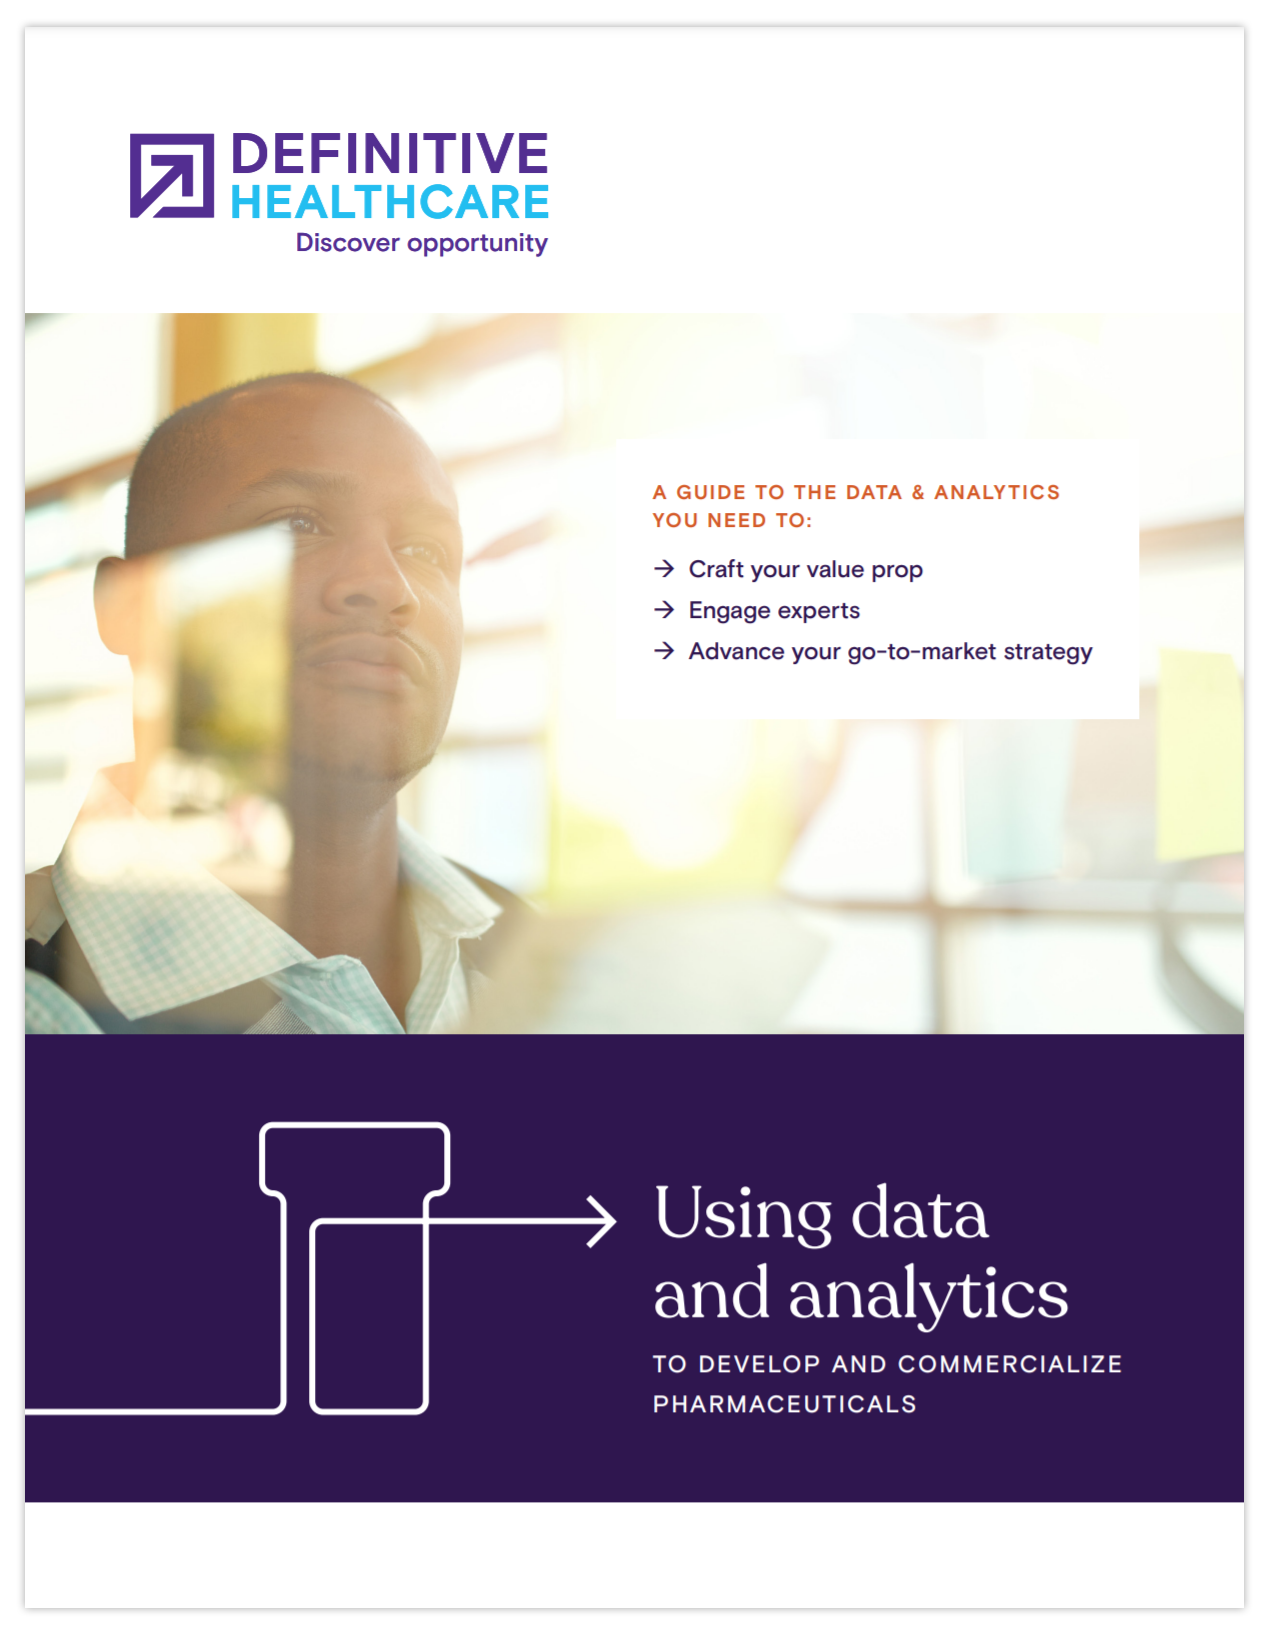 Using data and analytics to develop and commercialize pharmaceuticals